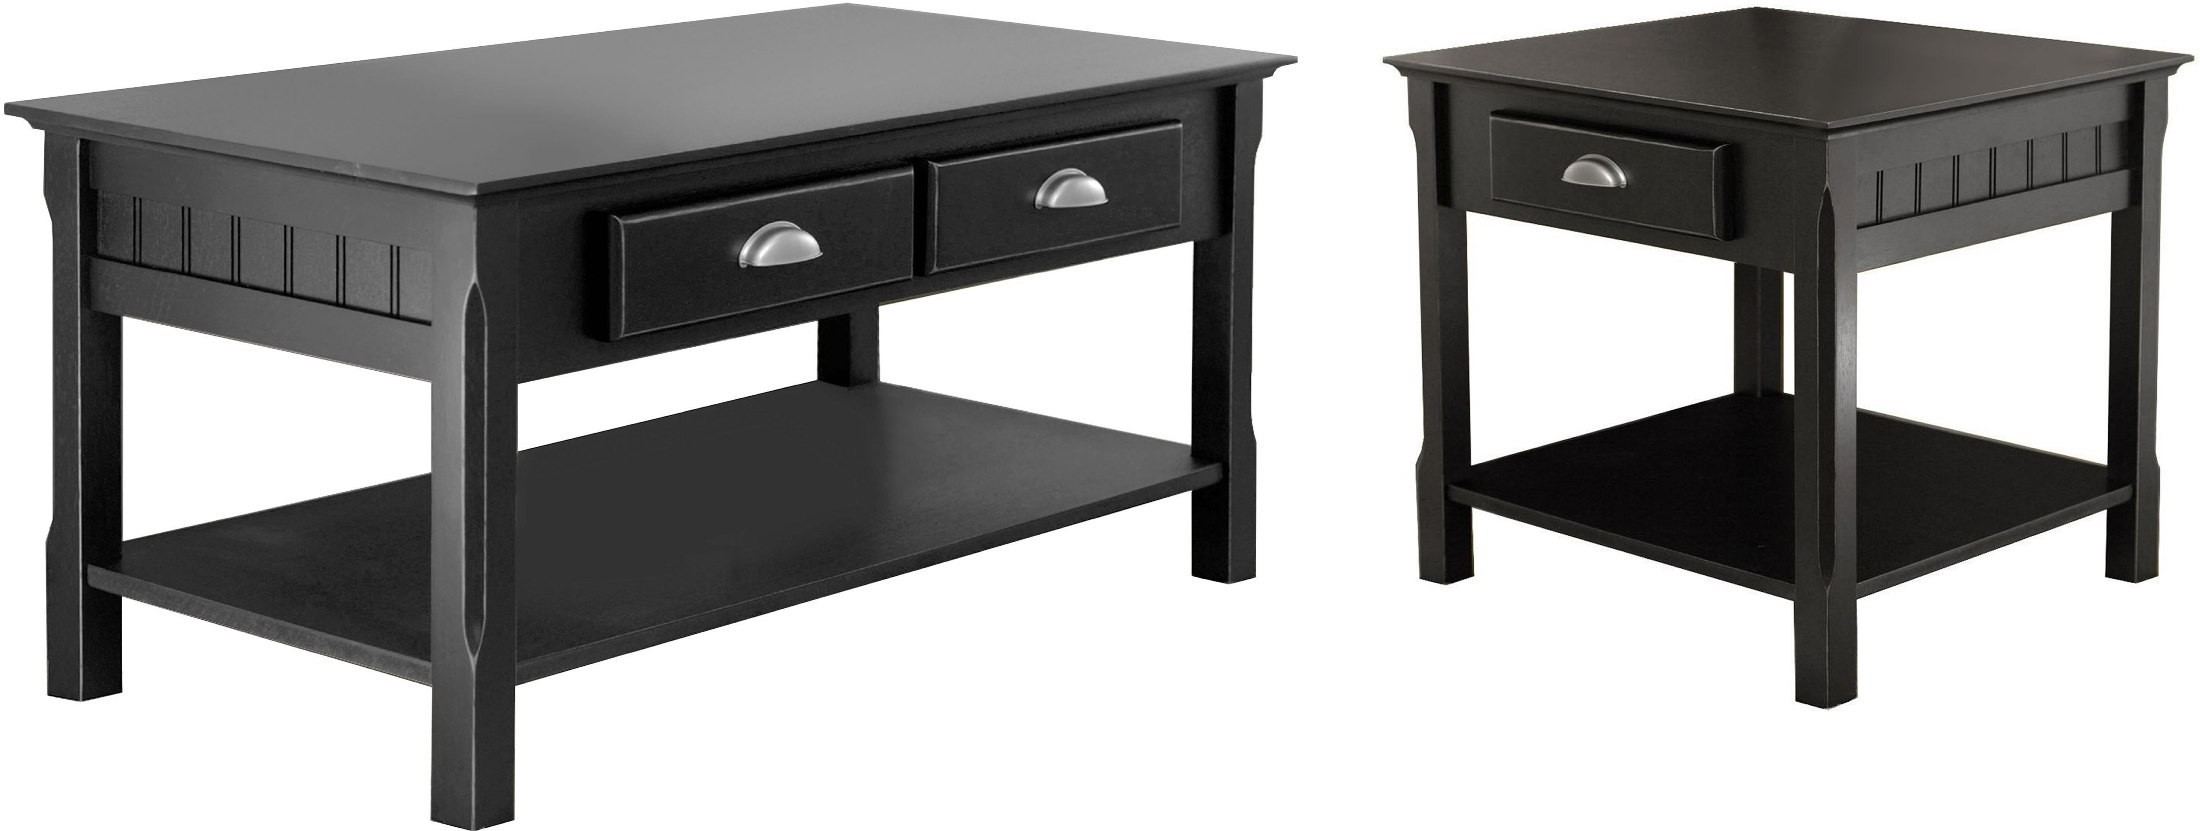 Timber black 2 drawer occasional table set from for Occasional table with drawers